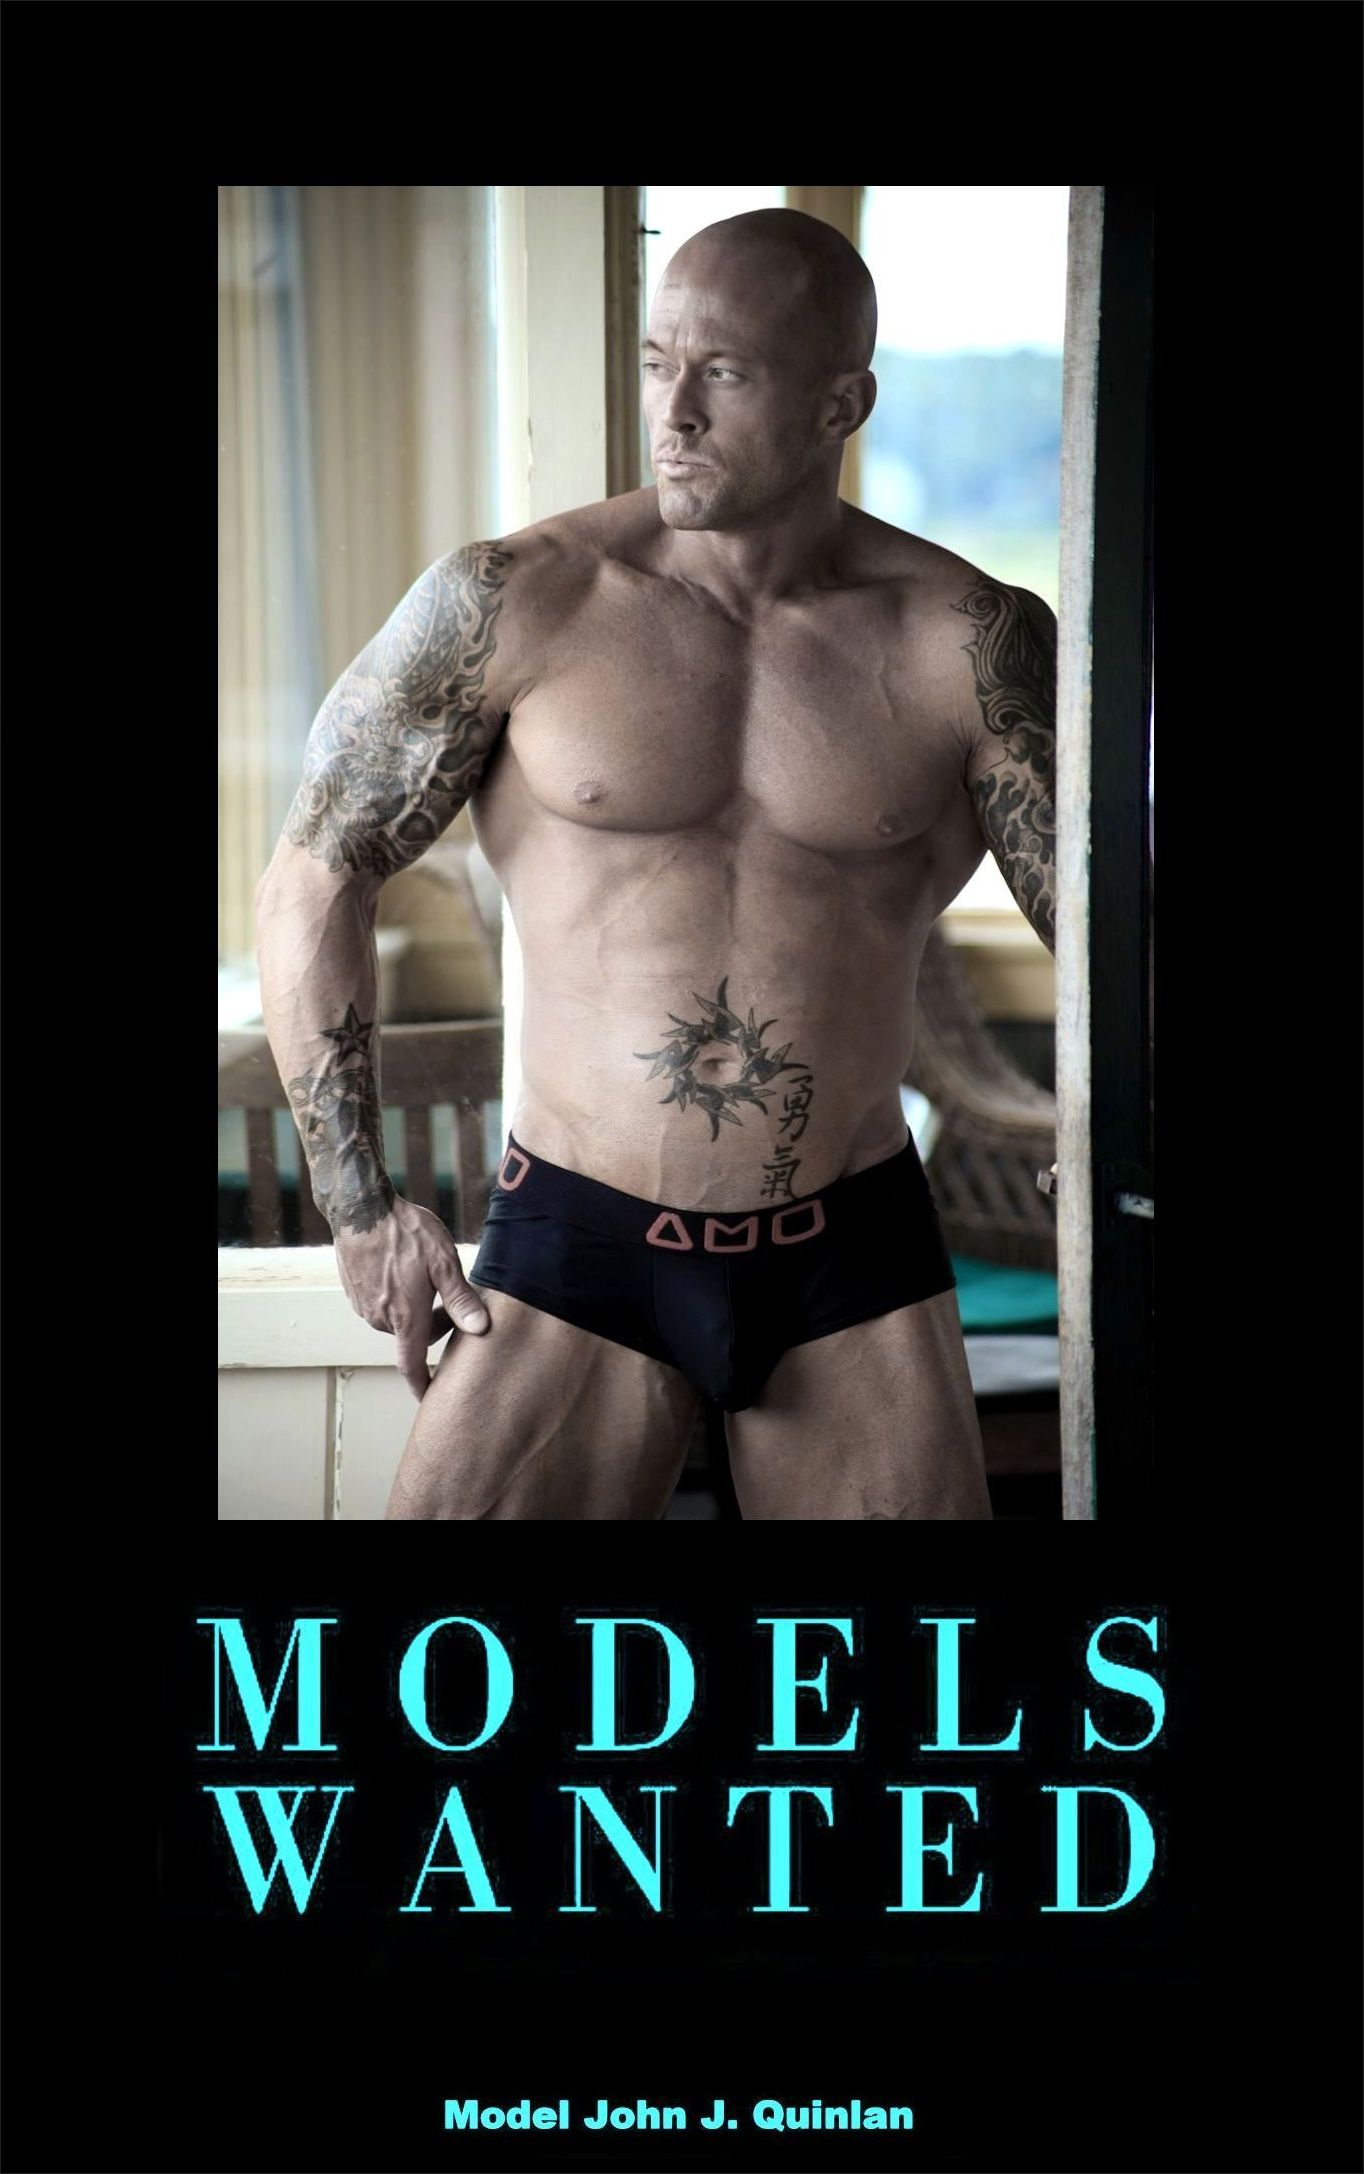 Romance Physique Model & Actor John Joseph Quinlan Cover Models Wanted #JohnQuinlan